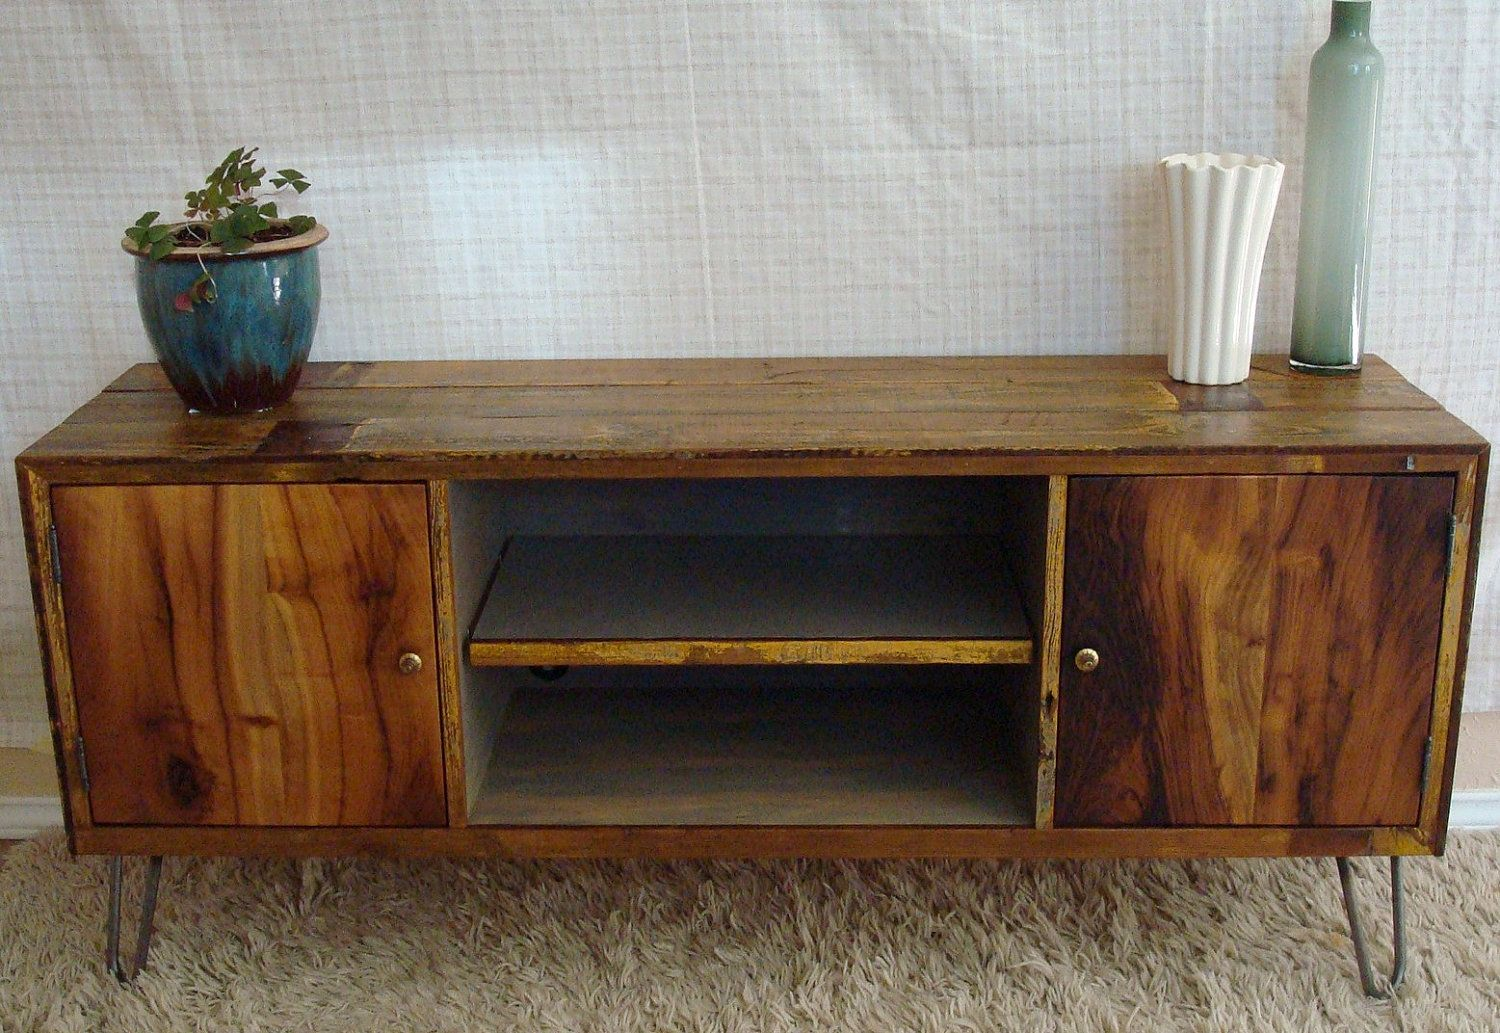 Pin By Lana On Rustic Swag Mid Century Modern Tv Stand